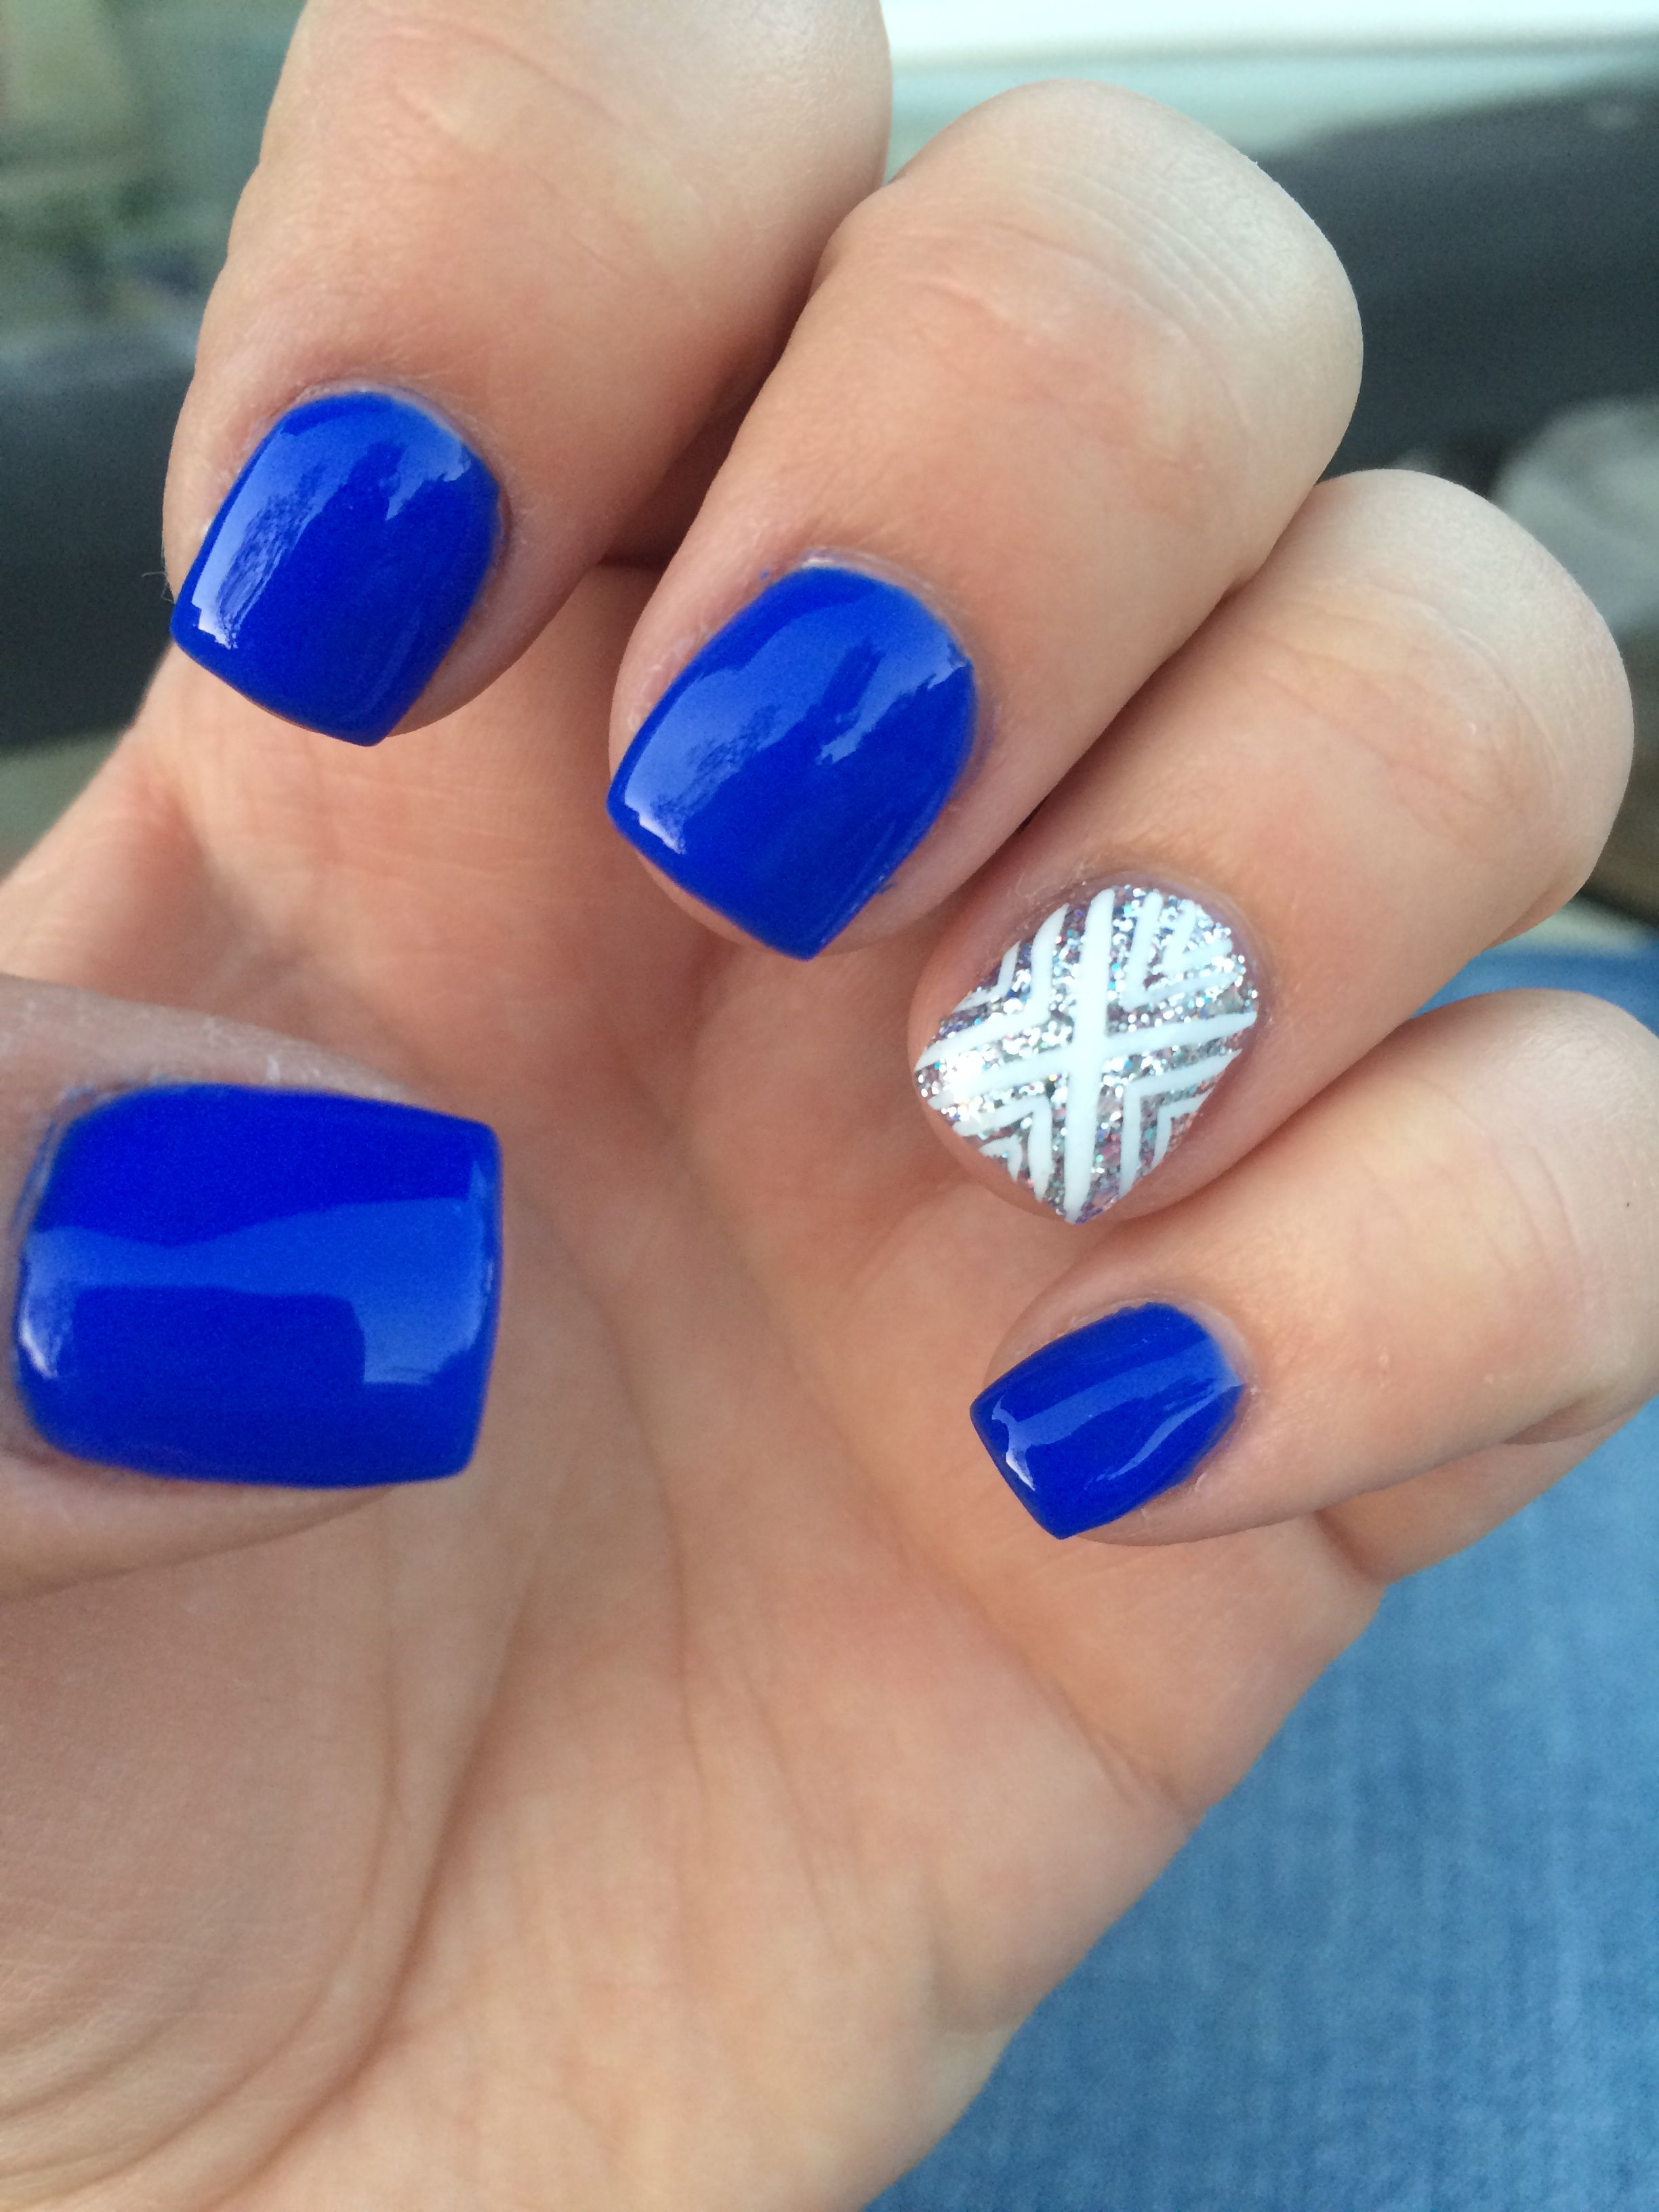 Cute gel nails by Courtney m | My Style | Pinterest | Make up, Nail ...